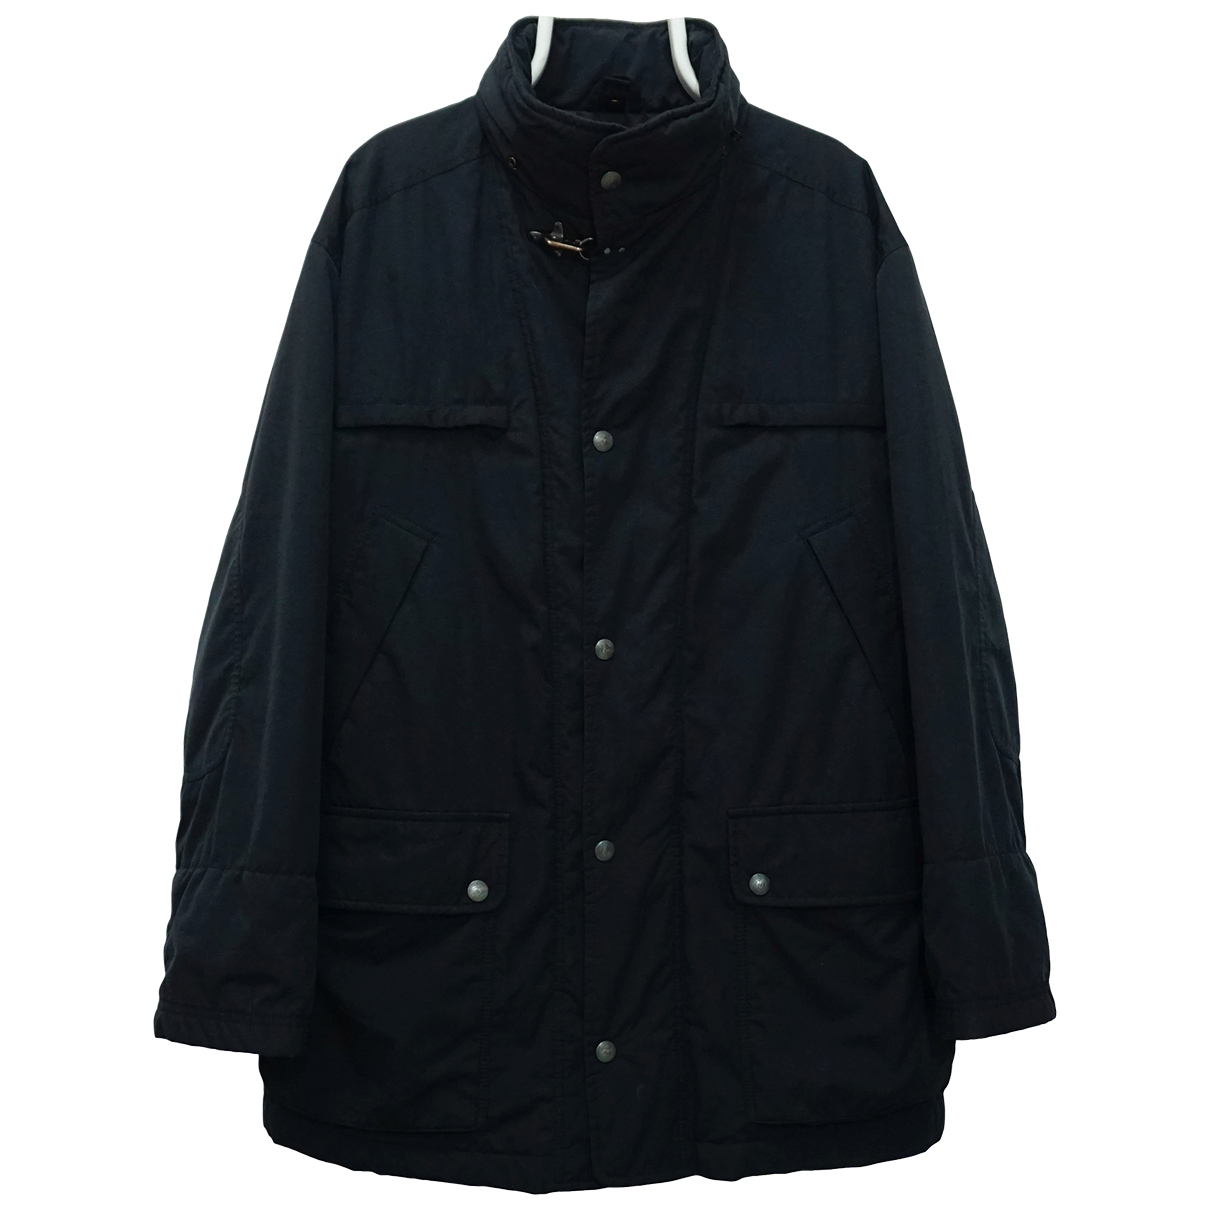 Fay \N Navy jacket  for Men L International